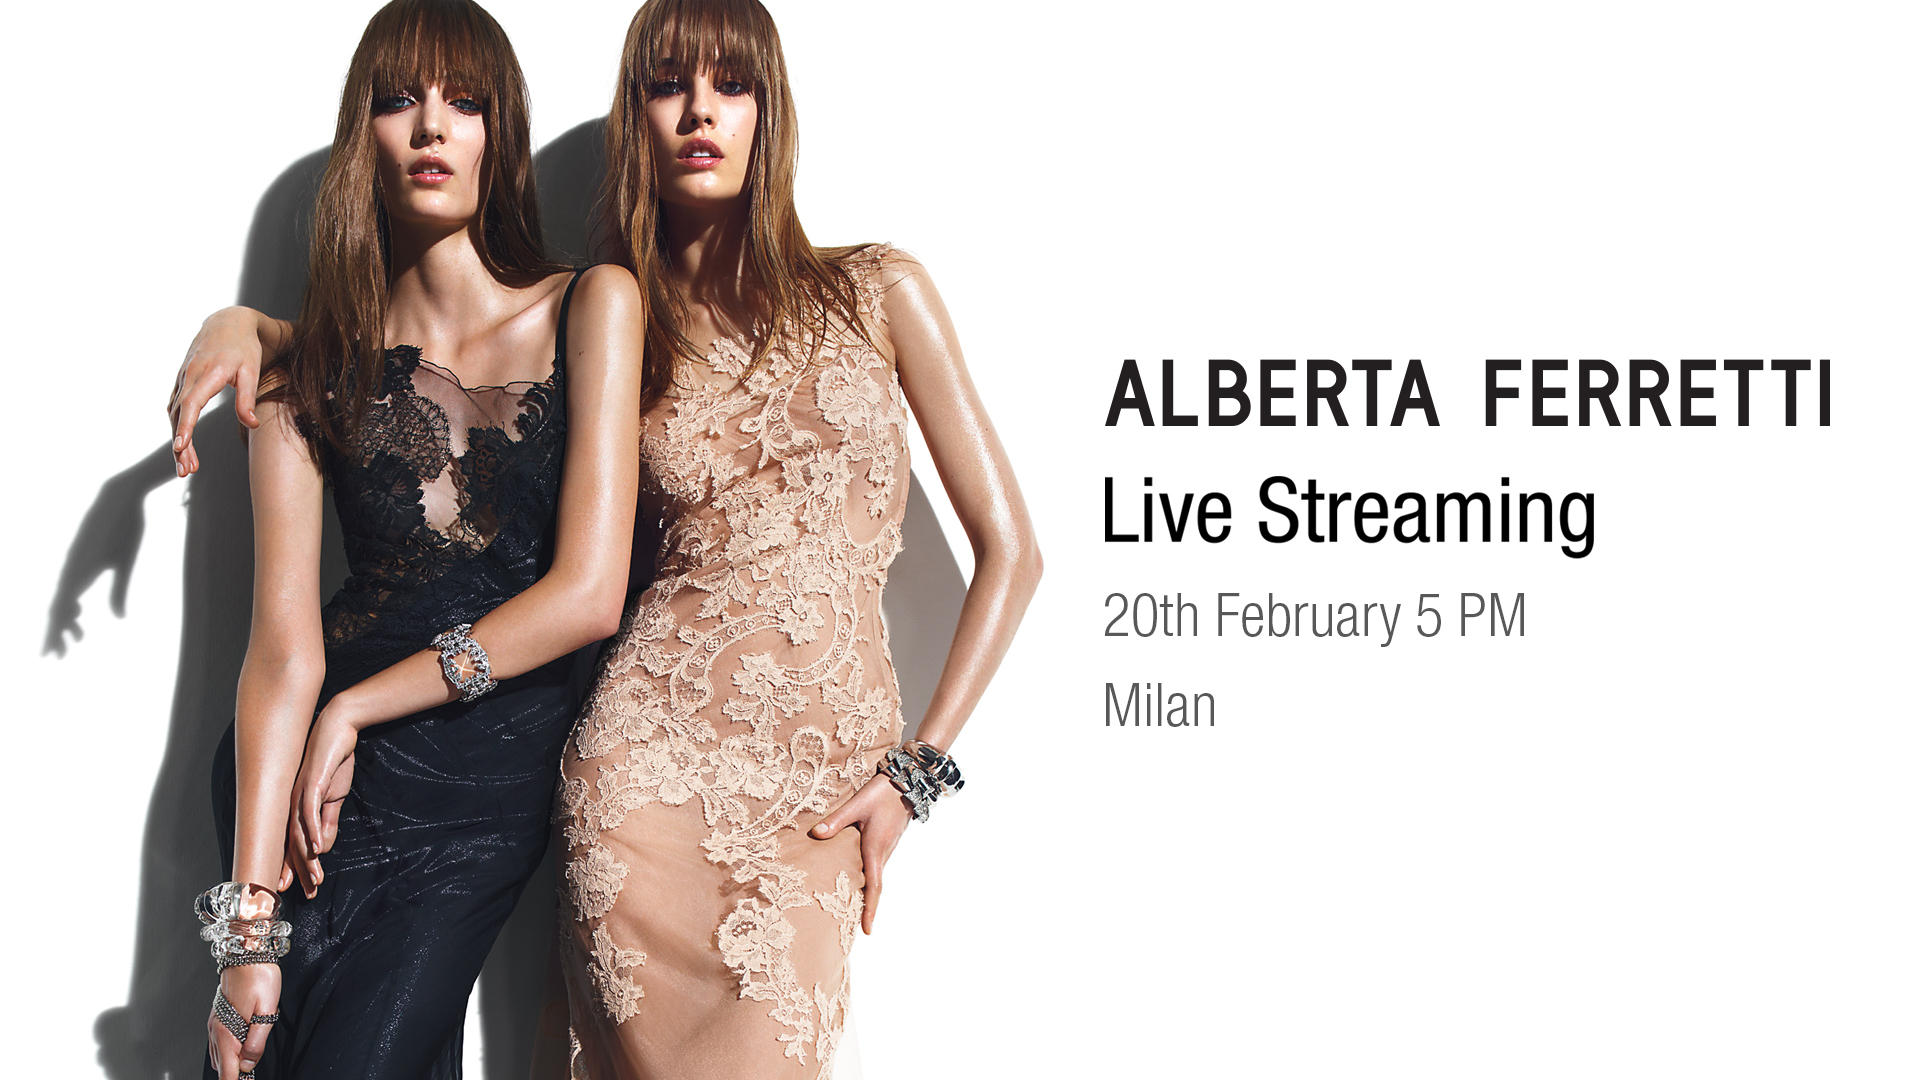 Alberta Ferretti Autumn Winter 2013-14 Fashion Show Live Streaming Milan